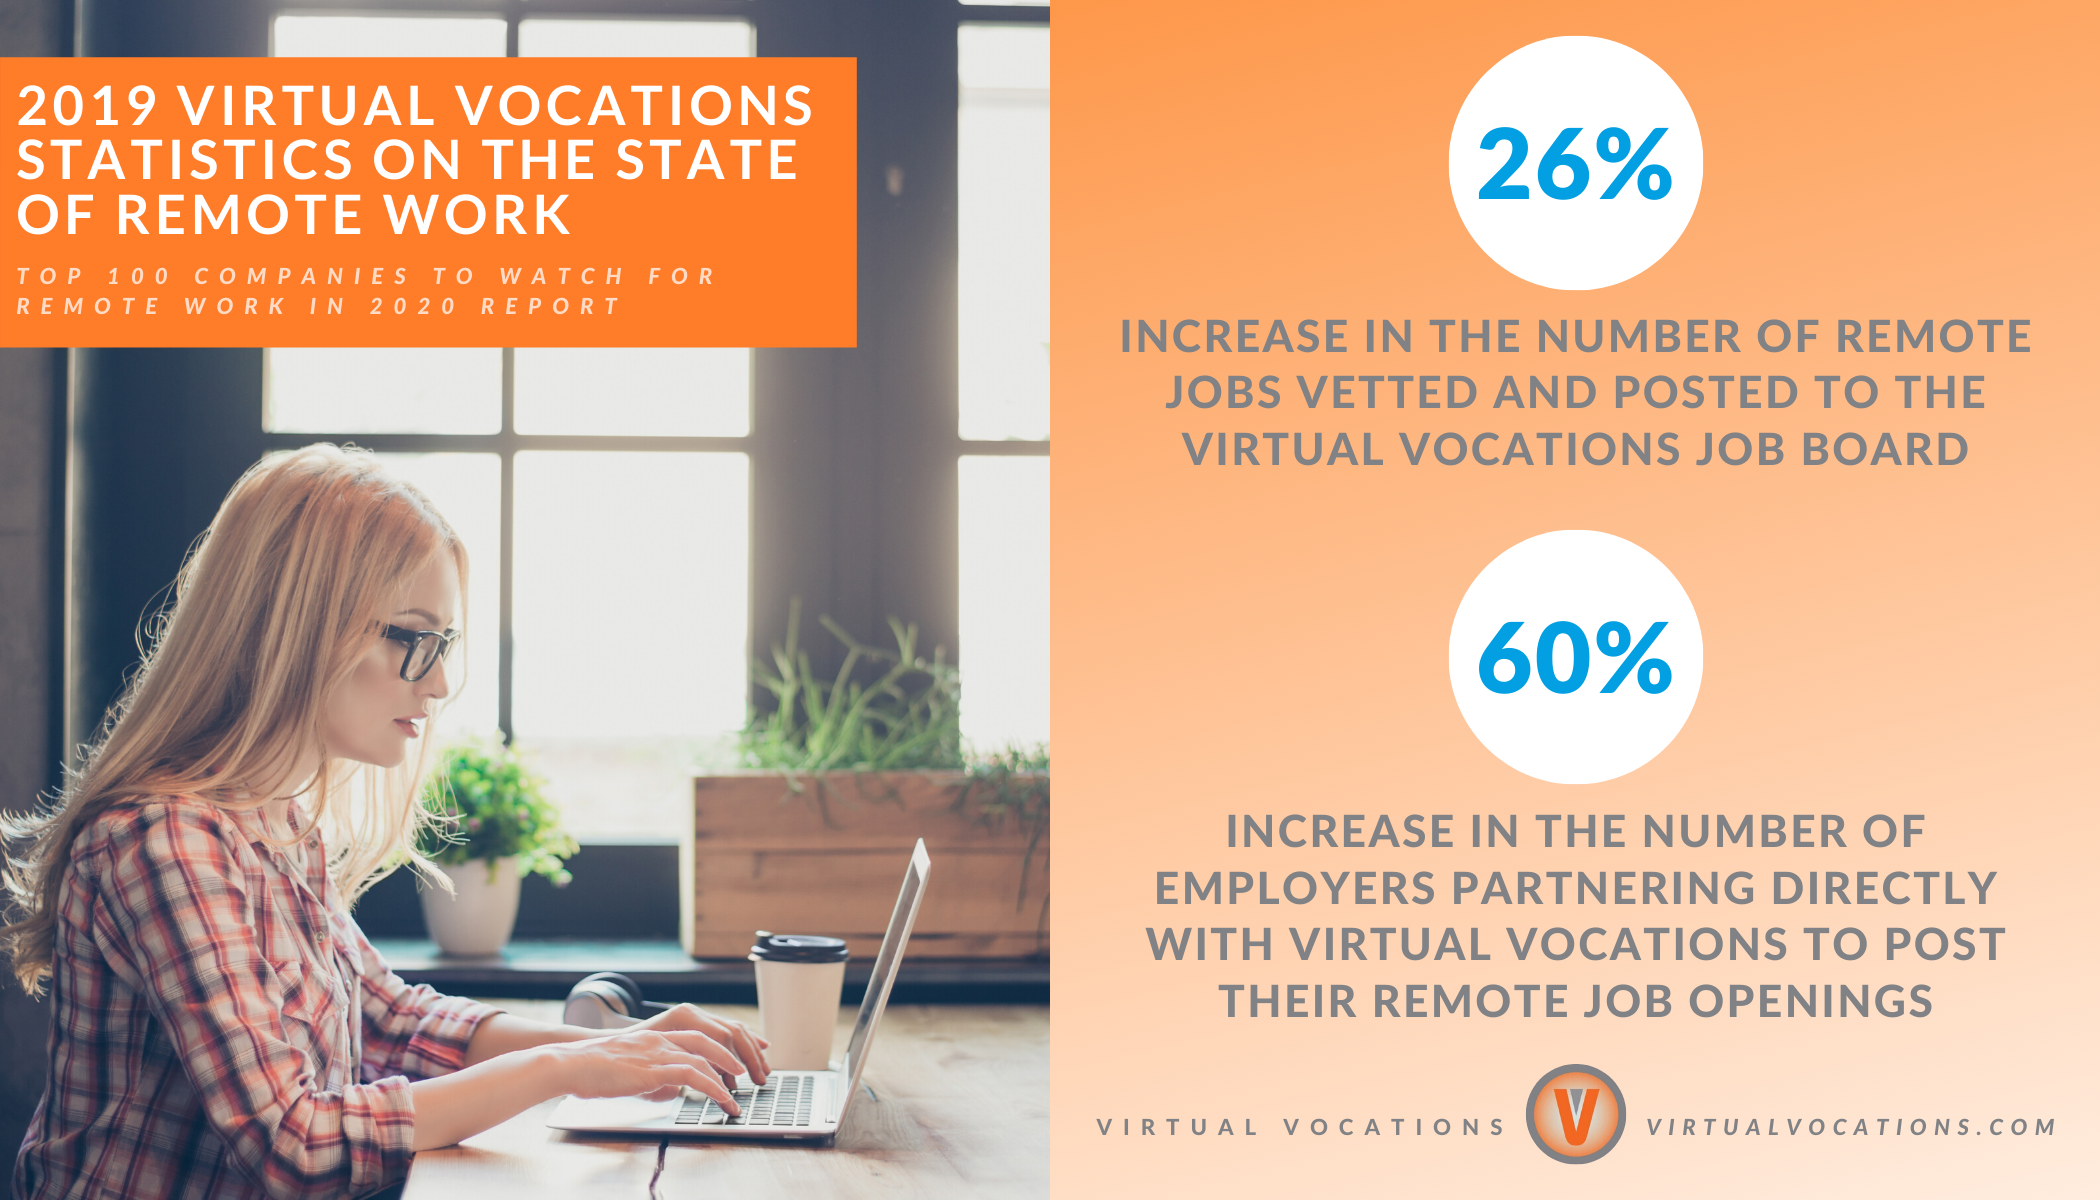 Virtual Vocations State of Remote Work - Top 100 Companies to Watch for Remote Jobs in 2020